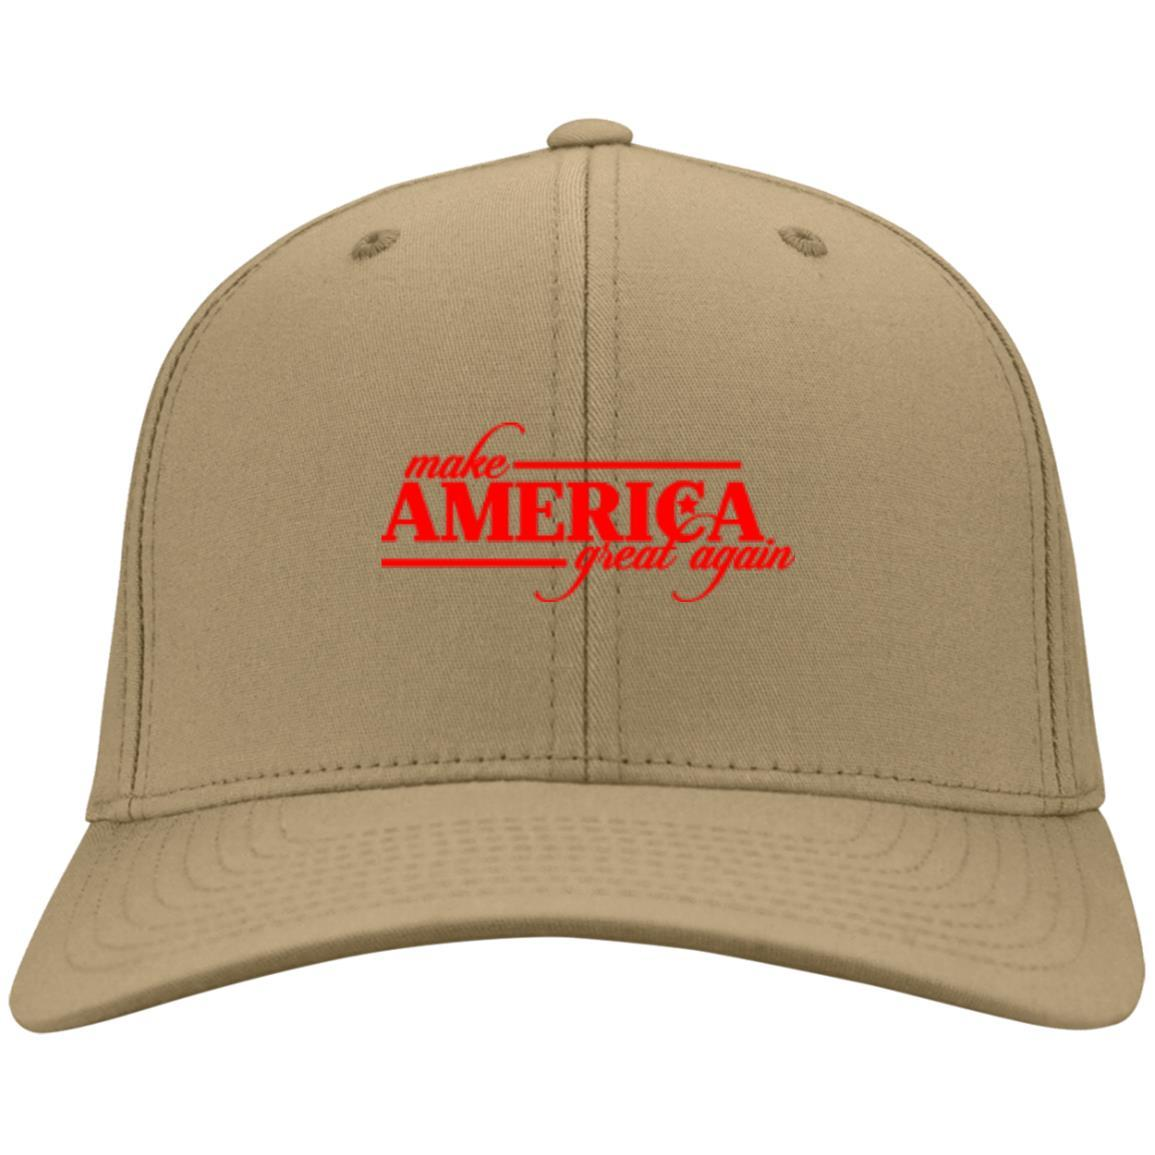 Make America Great Again - Port & Co. Twill Cap Vegas Gold